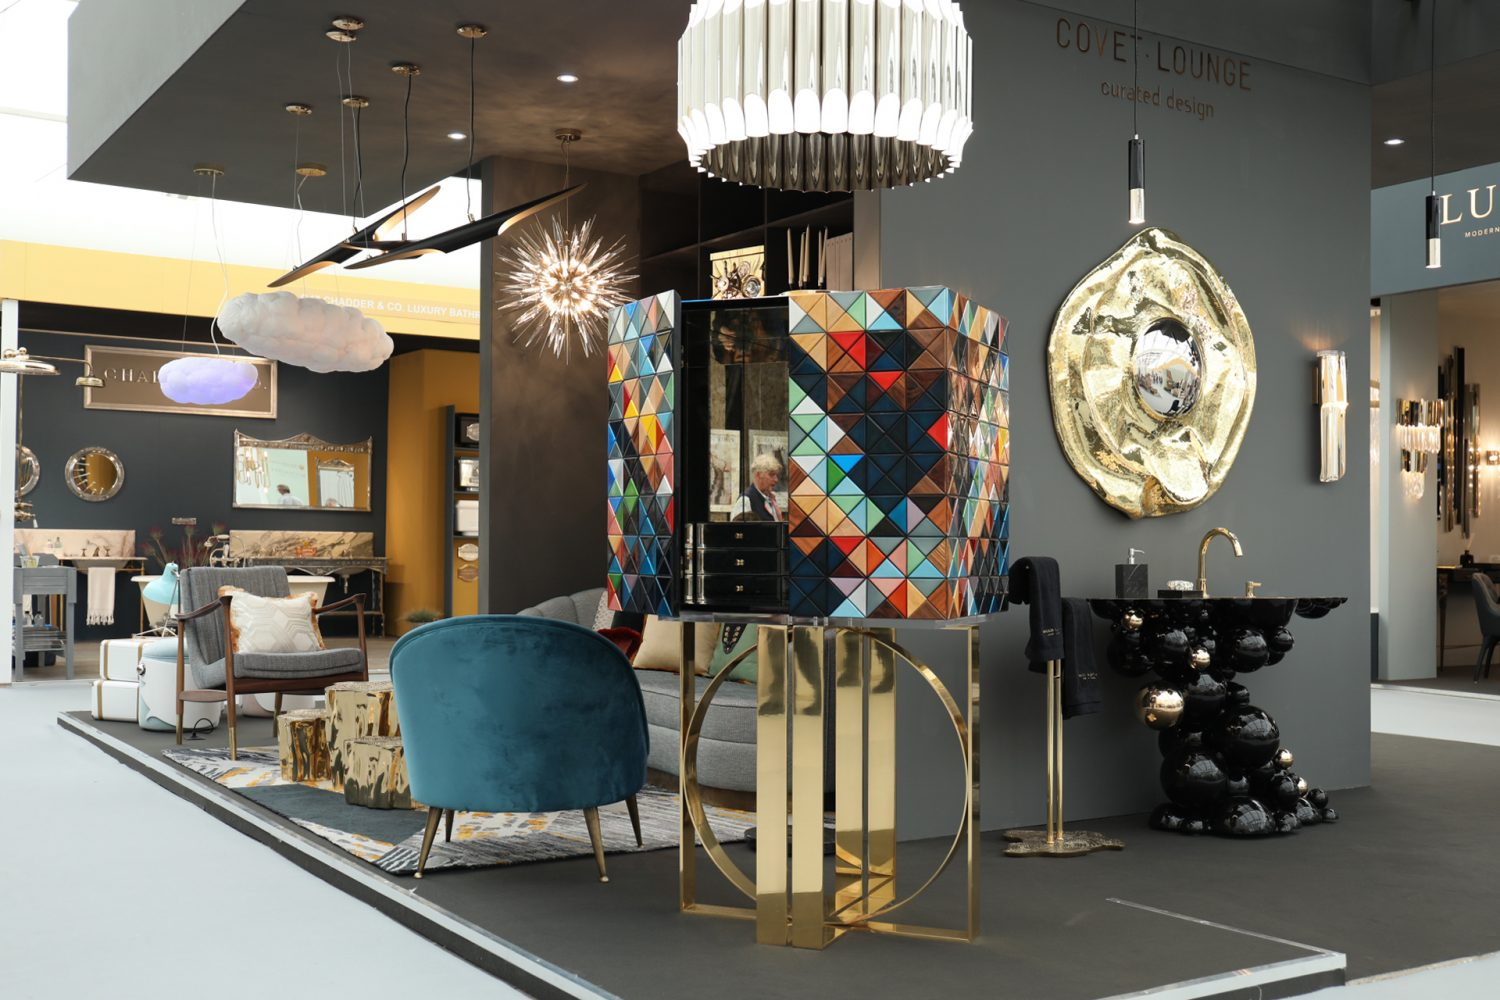 Decorex International 2019 Event Guide decorex international 2019 Decorex International 2019 Event Guide Decorex International 2019 Event Guide 3